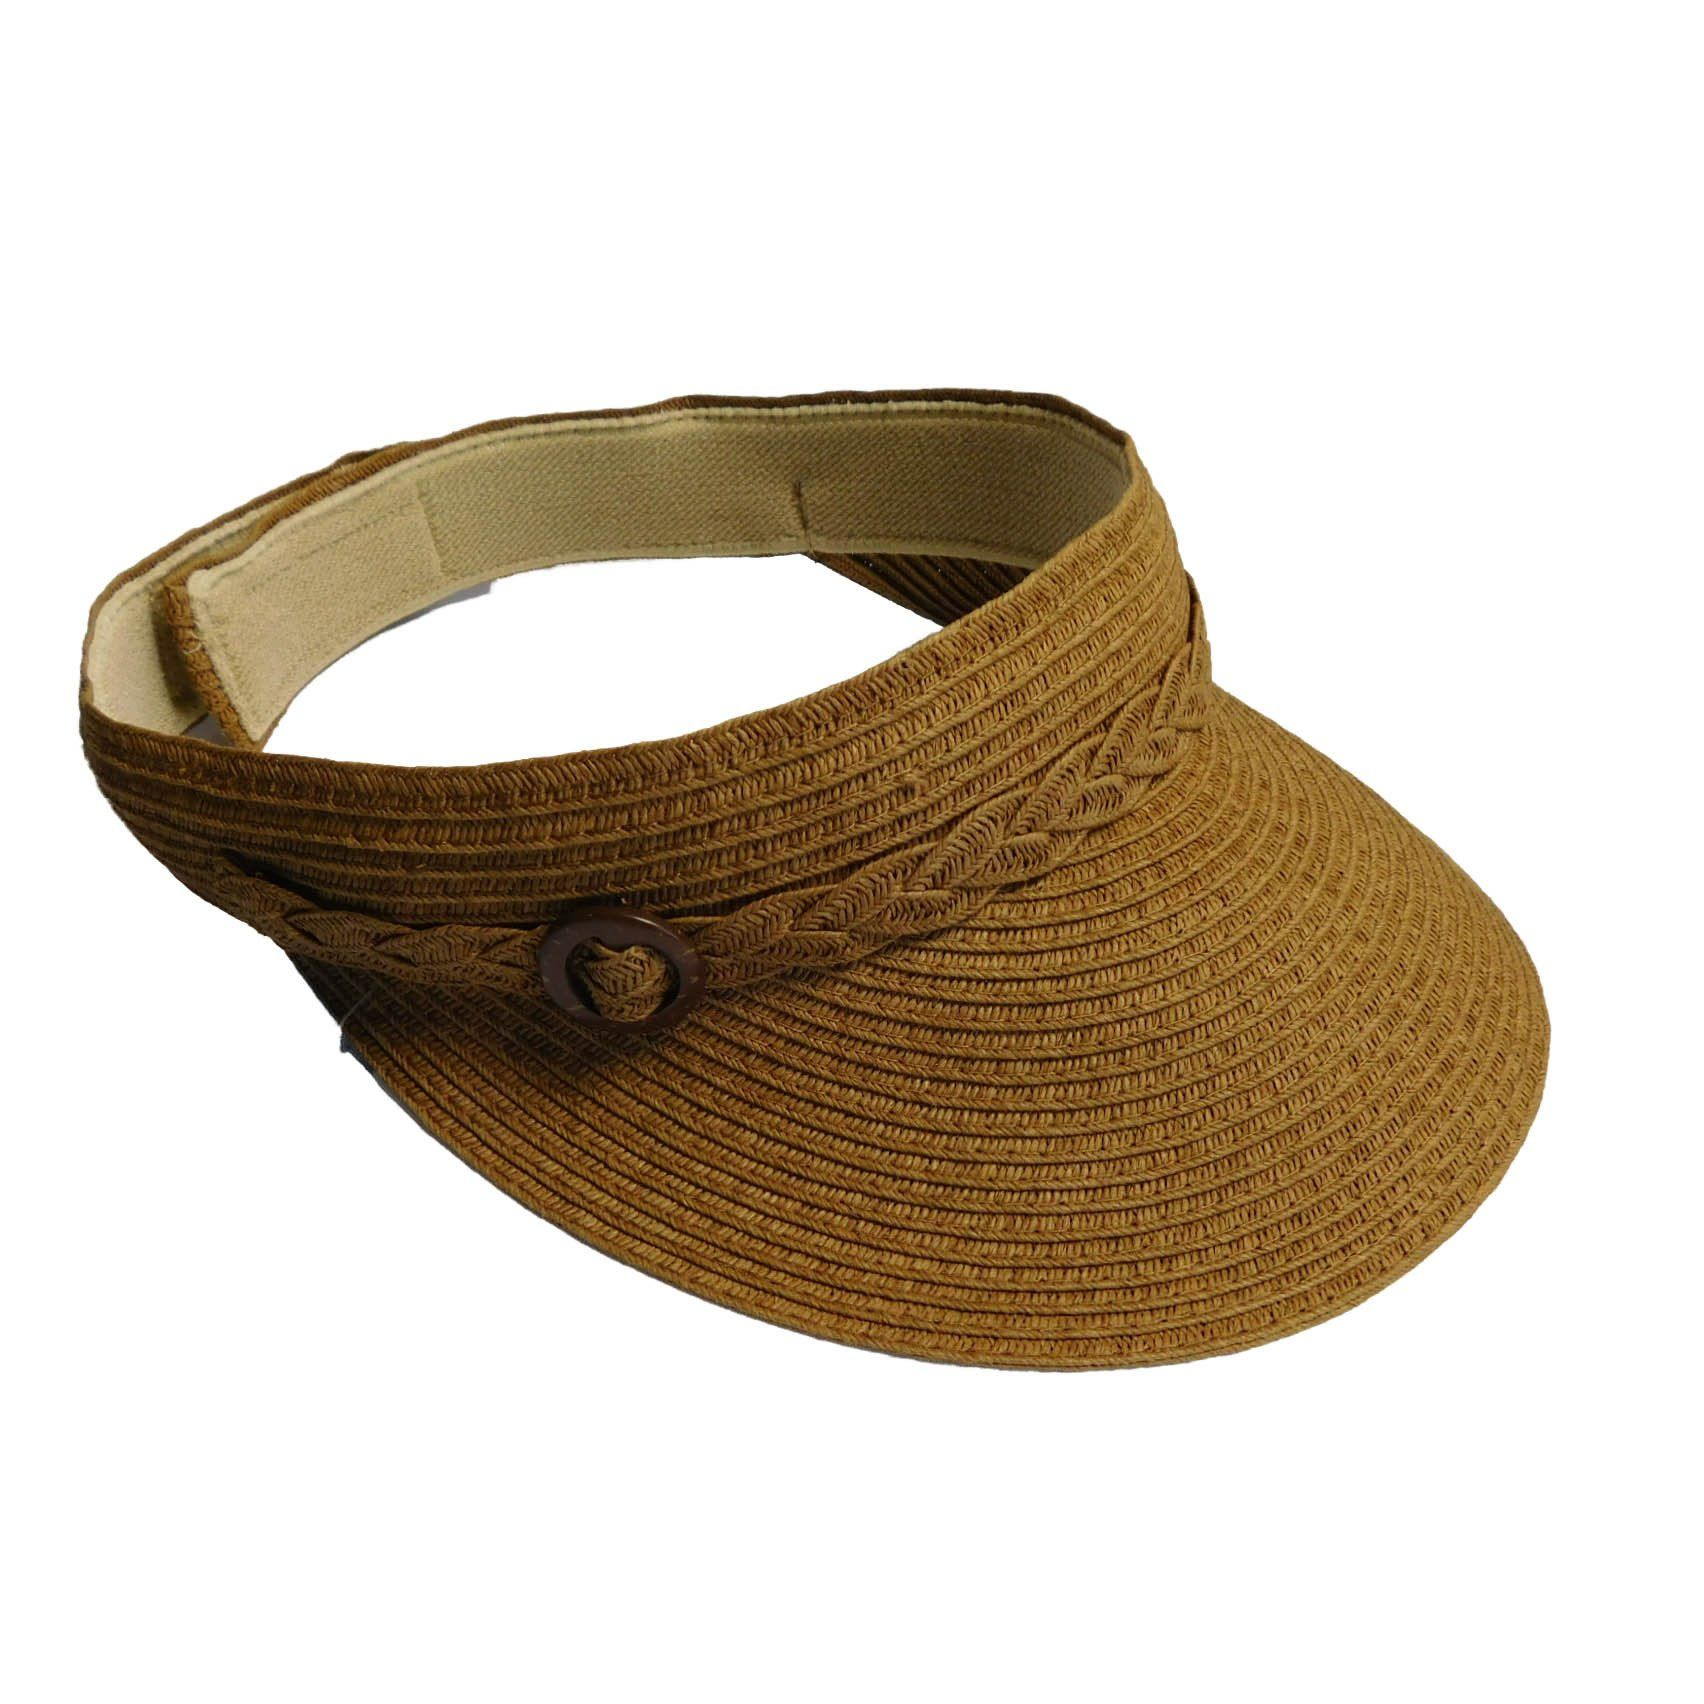 SONOMA Goods for LifeTM Woven Straw Buckle Visor  hat  womens  143cddd1e4ca